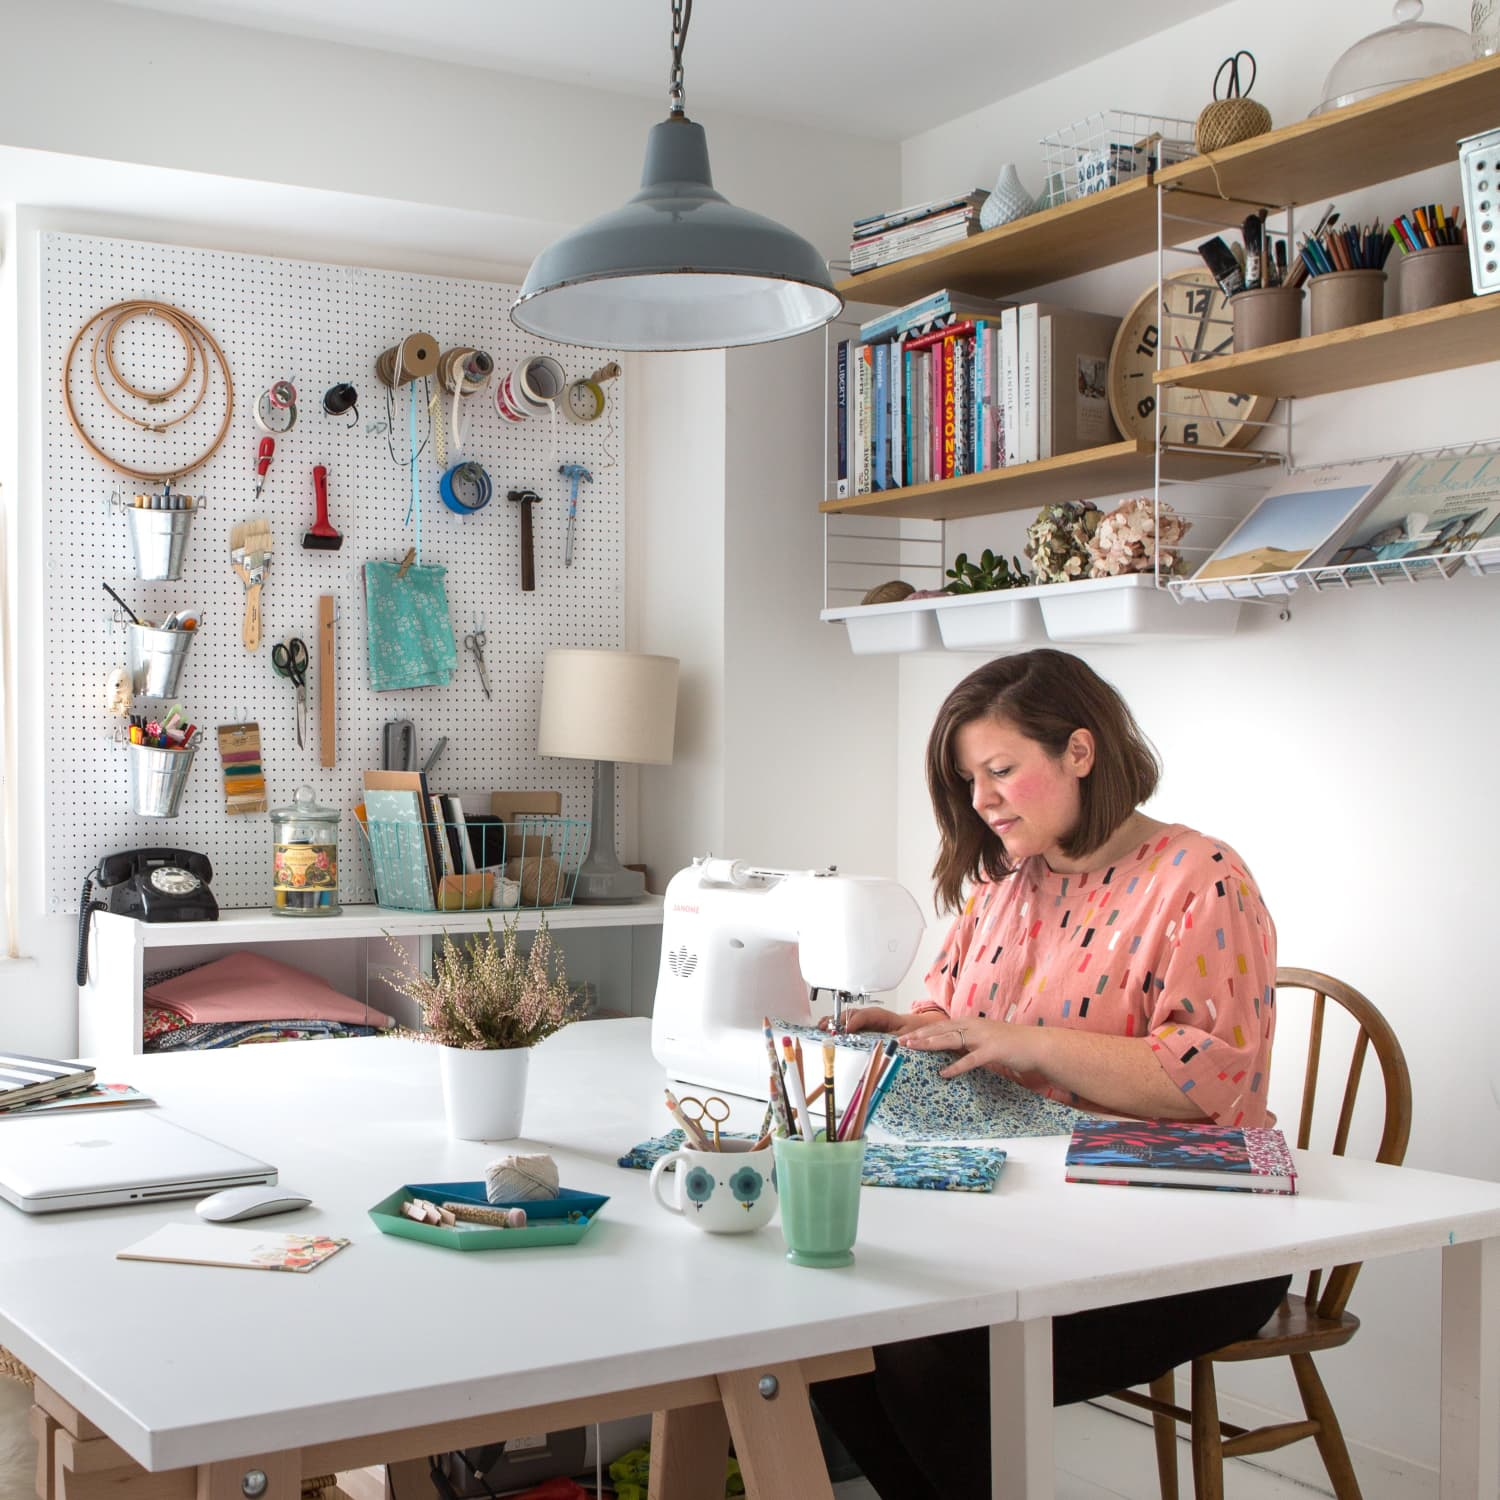 Where We Create A Look Inside Real Life Craft Rooms Art Studios Apartment Therapy